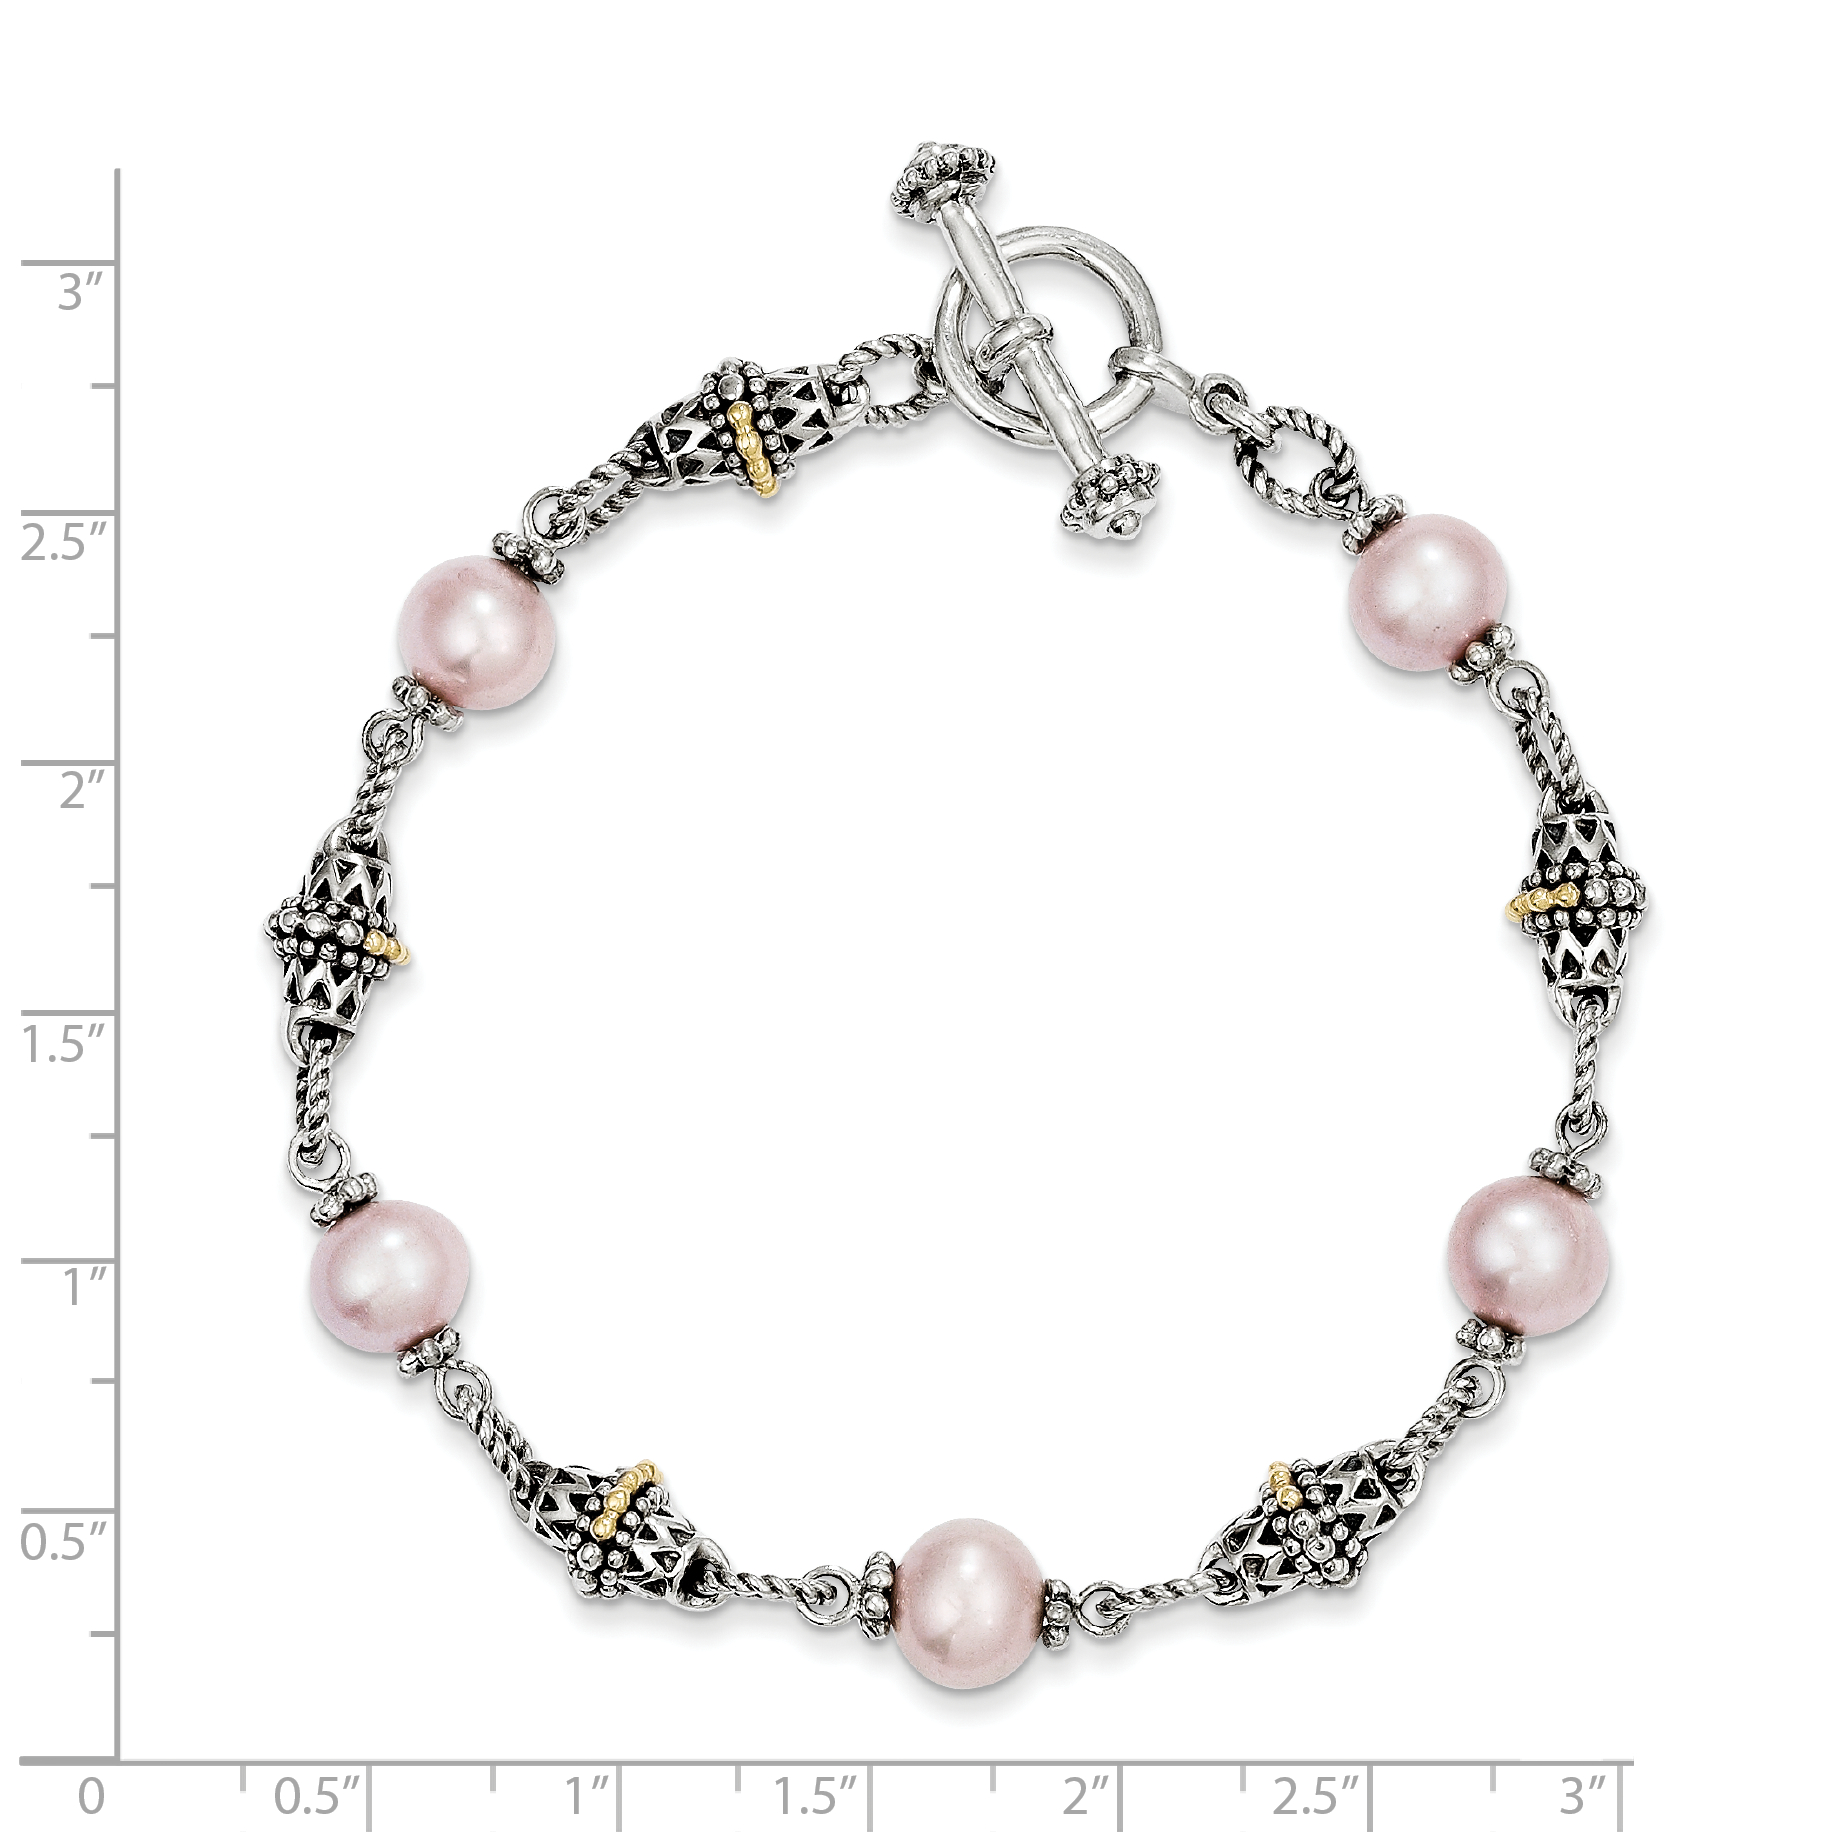 Sterling Silver Two Tone Silver And Gold Plated Sterling Silver w/9-10mm FW Cultured Pink Pearl 7.5in Bracelet - image 1 de 2